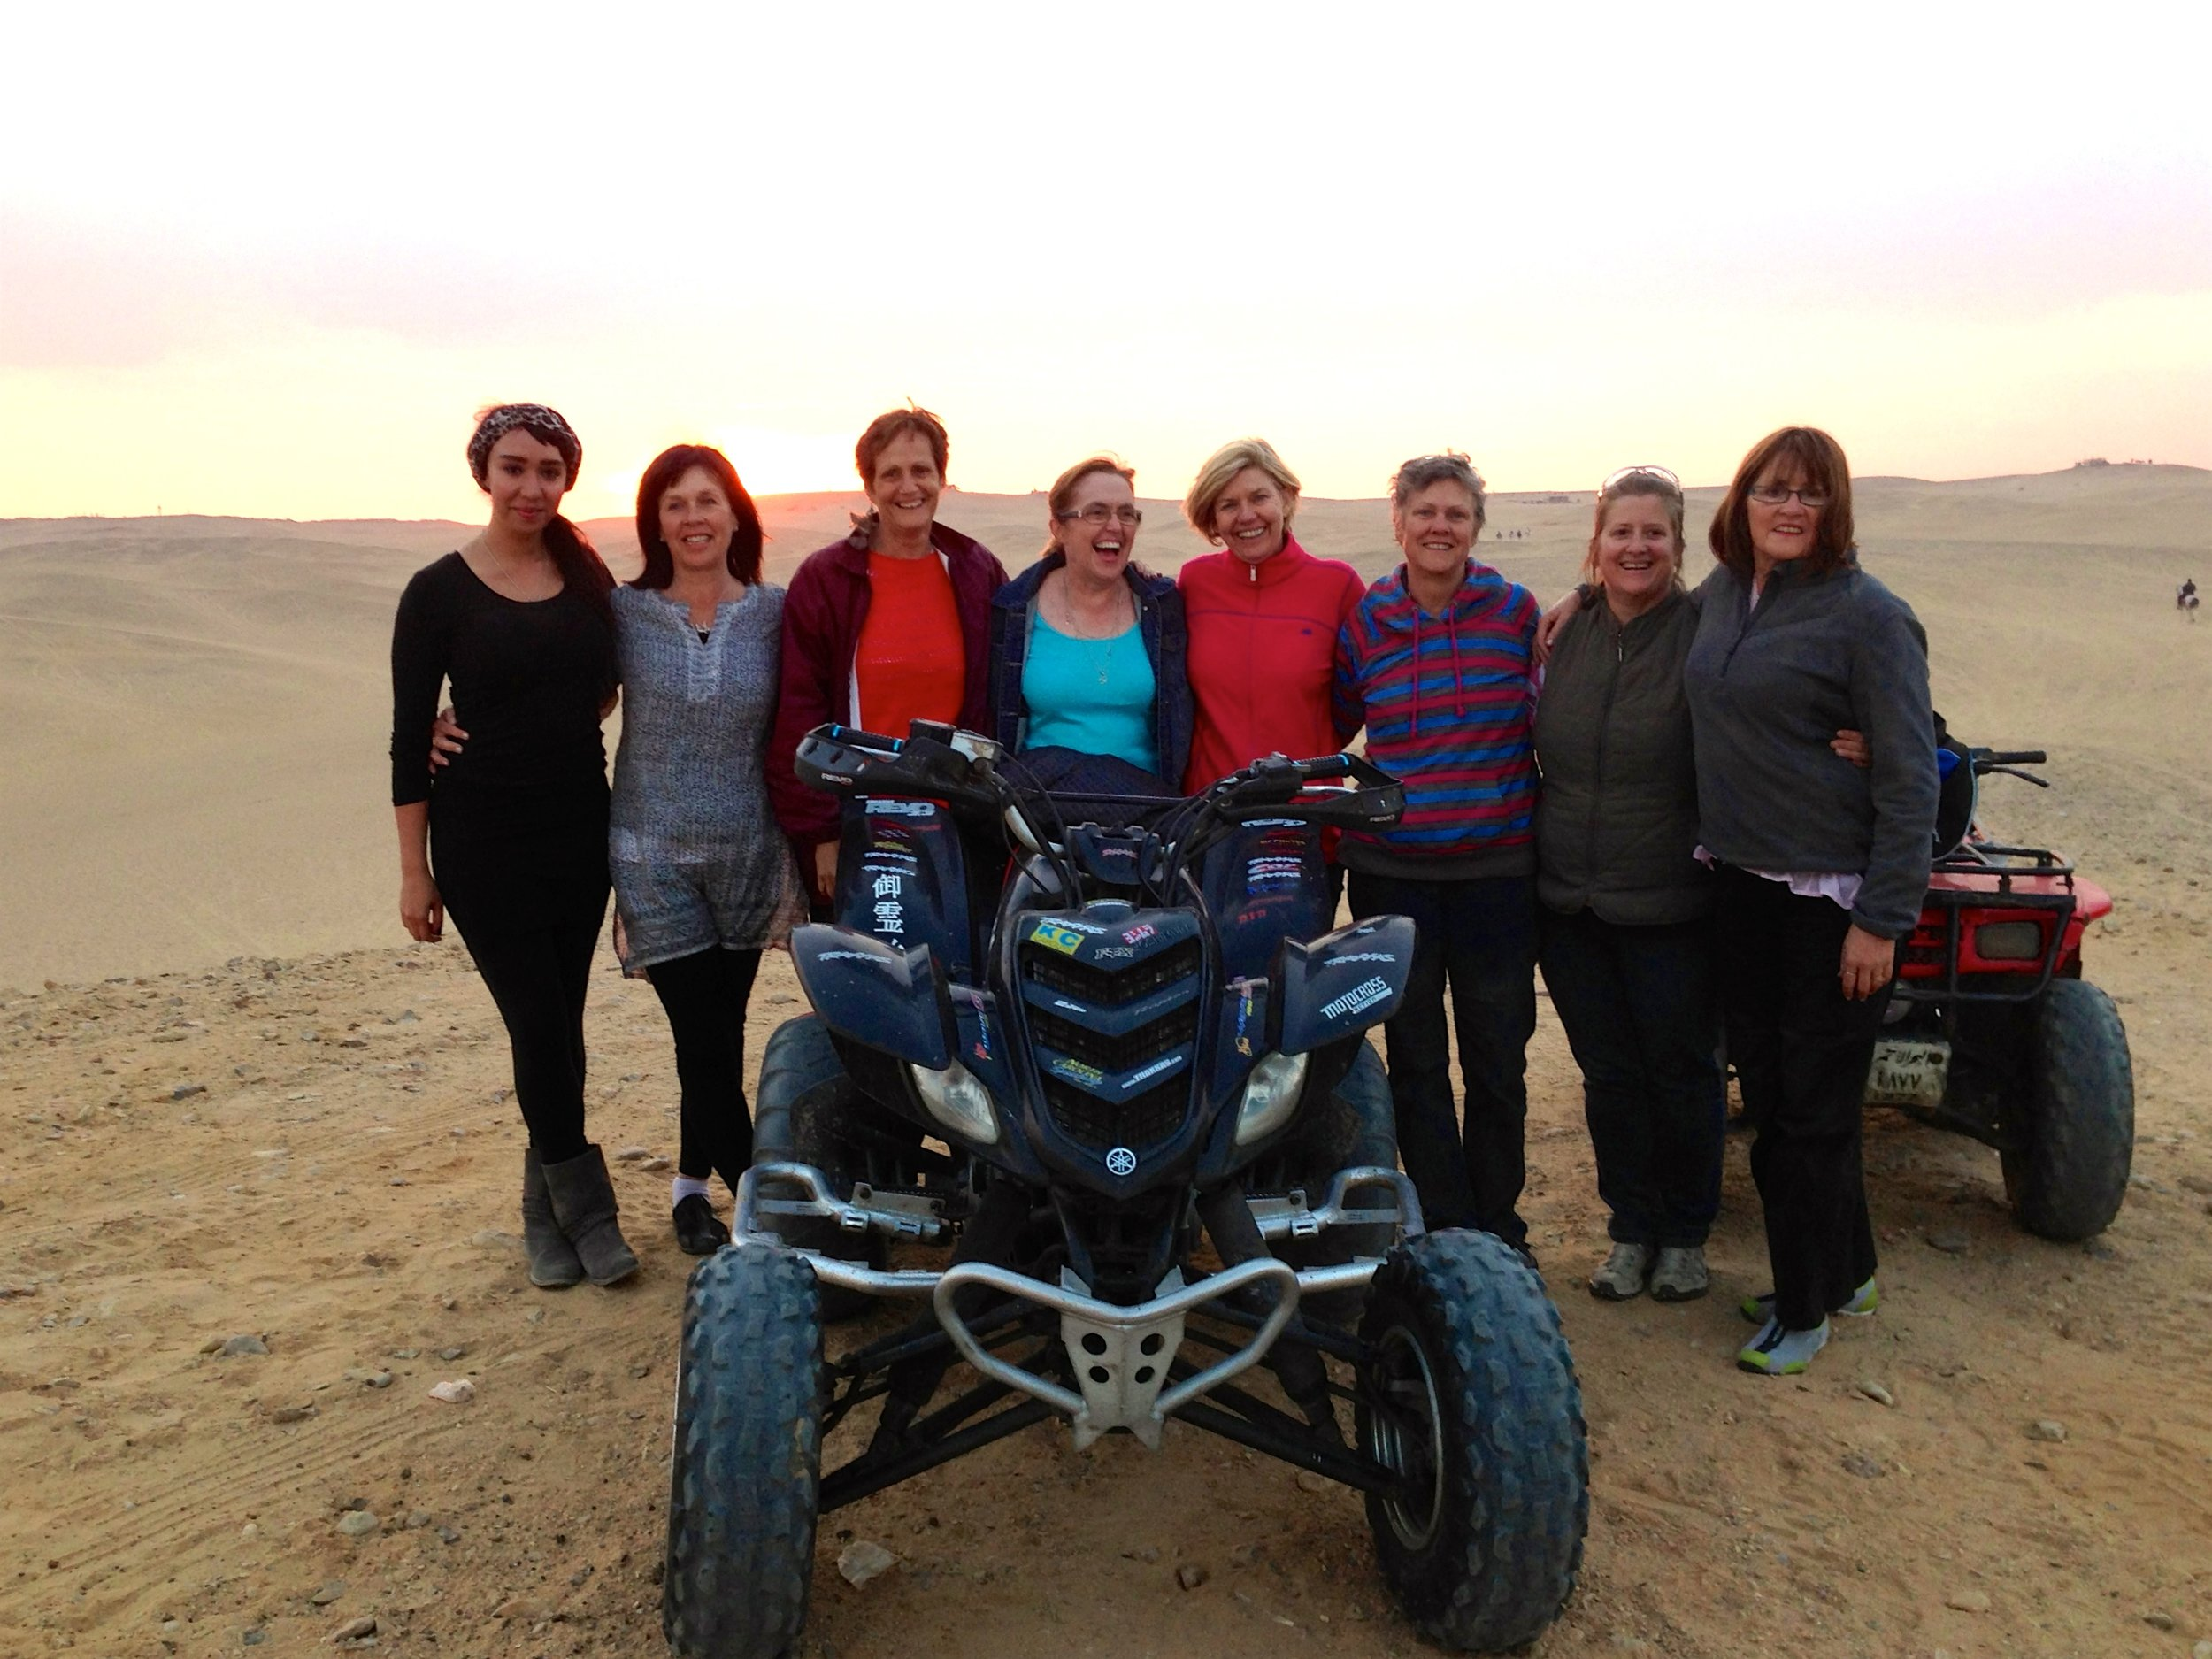 2012 Group riding quad bikes on the sand dunes at Giza Plateau